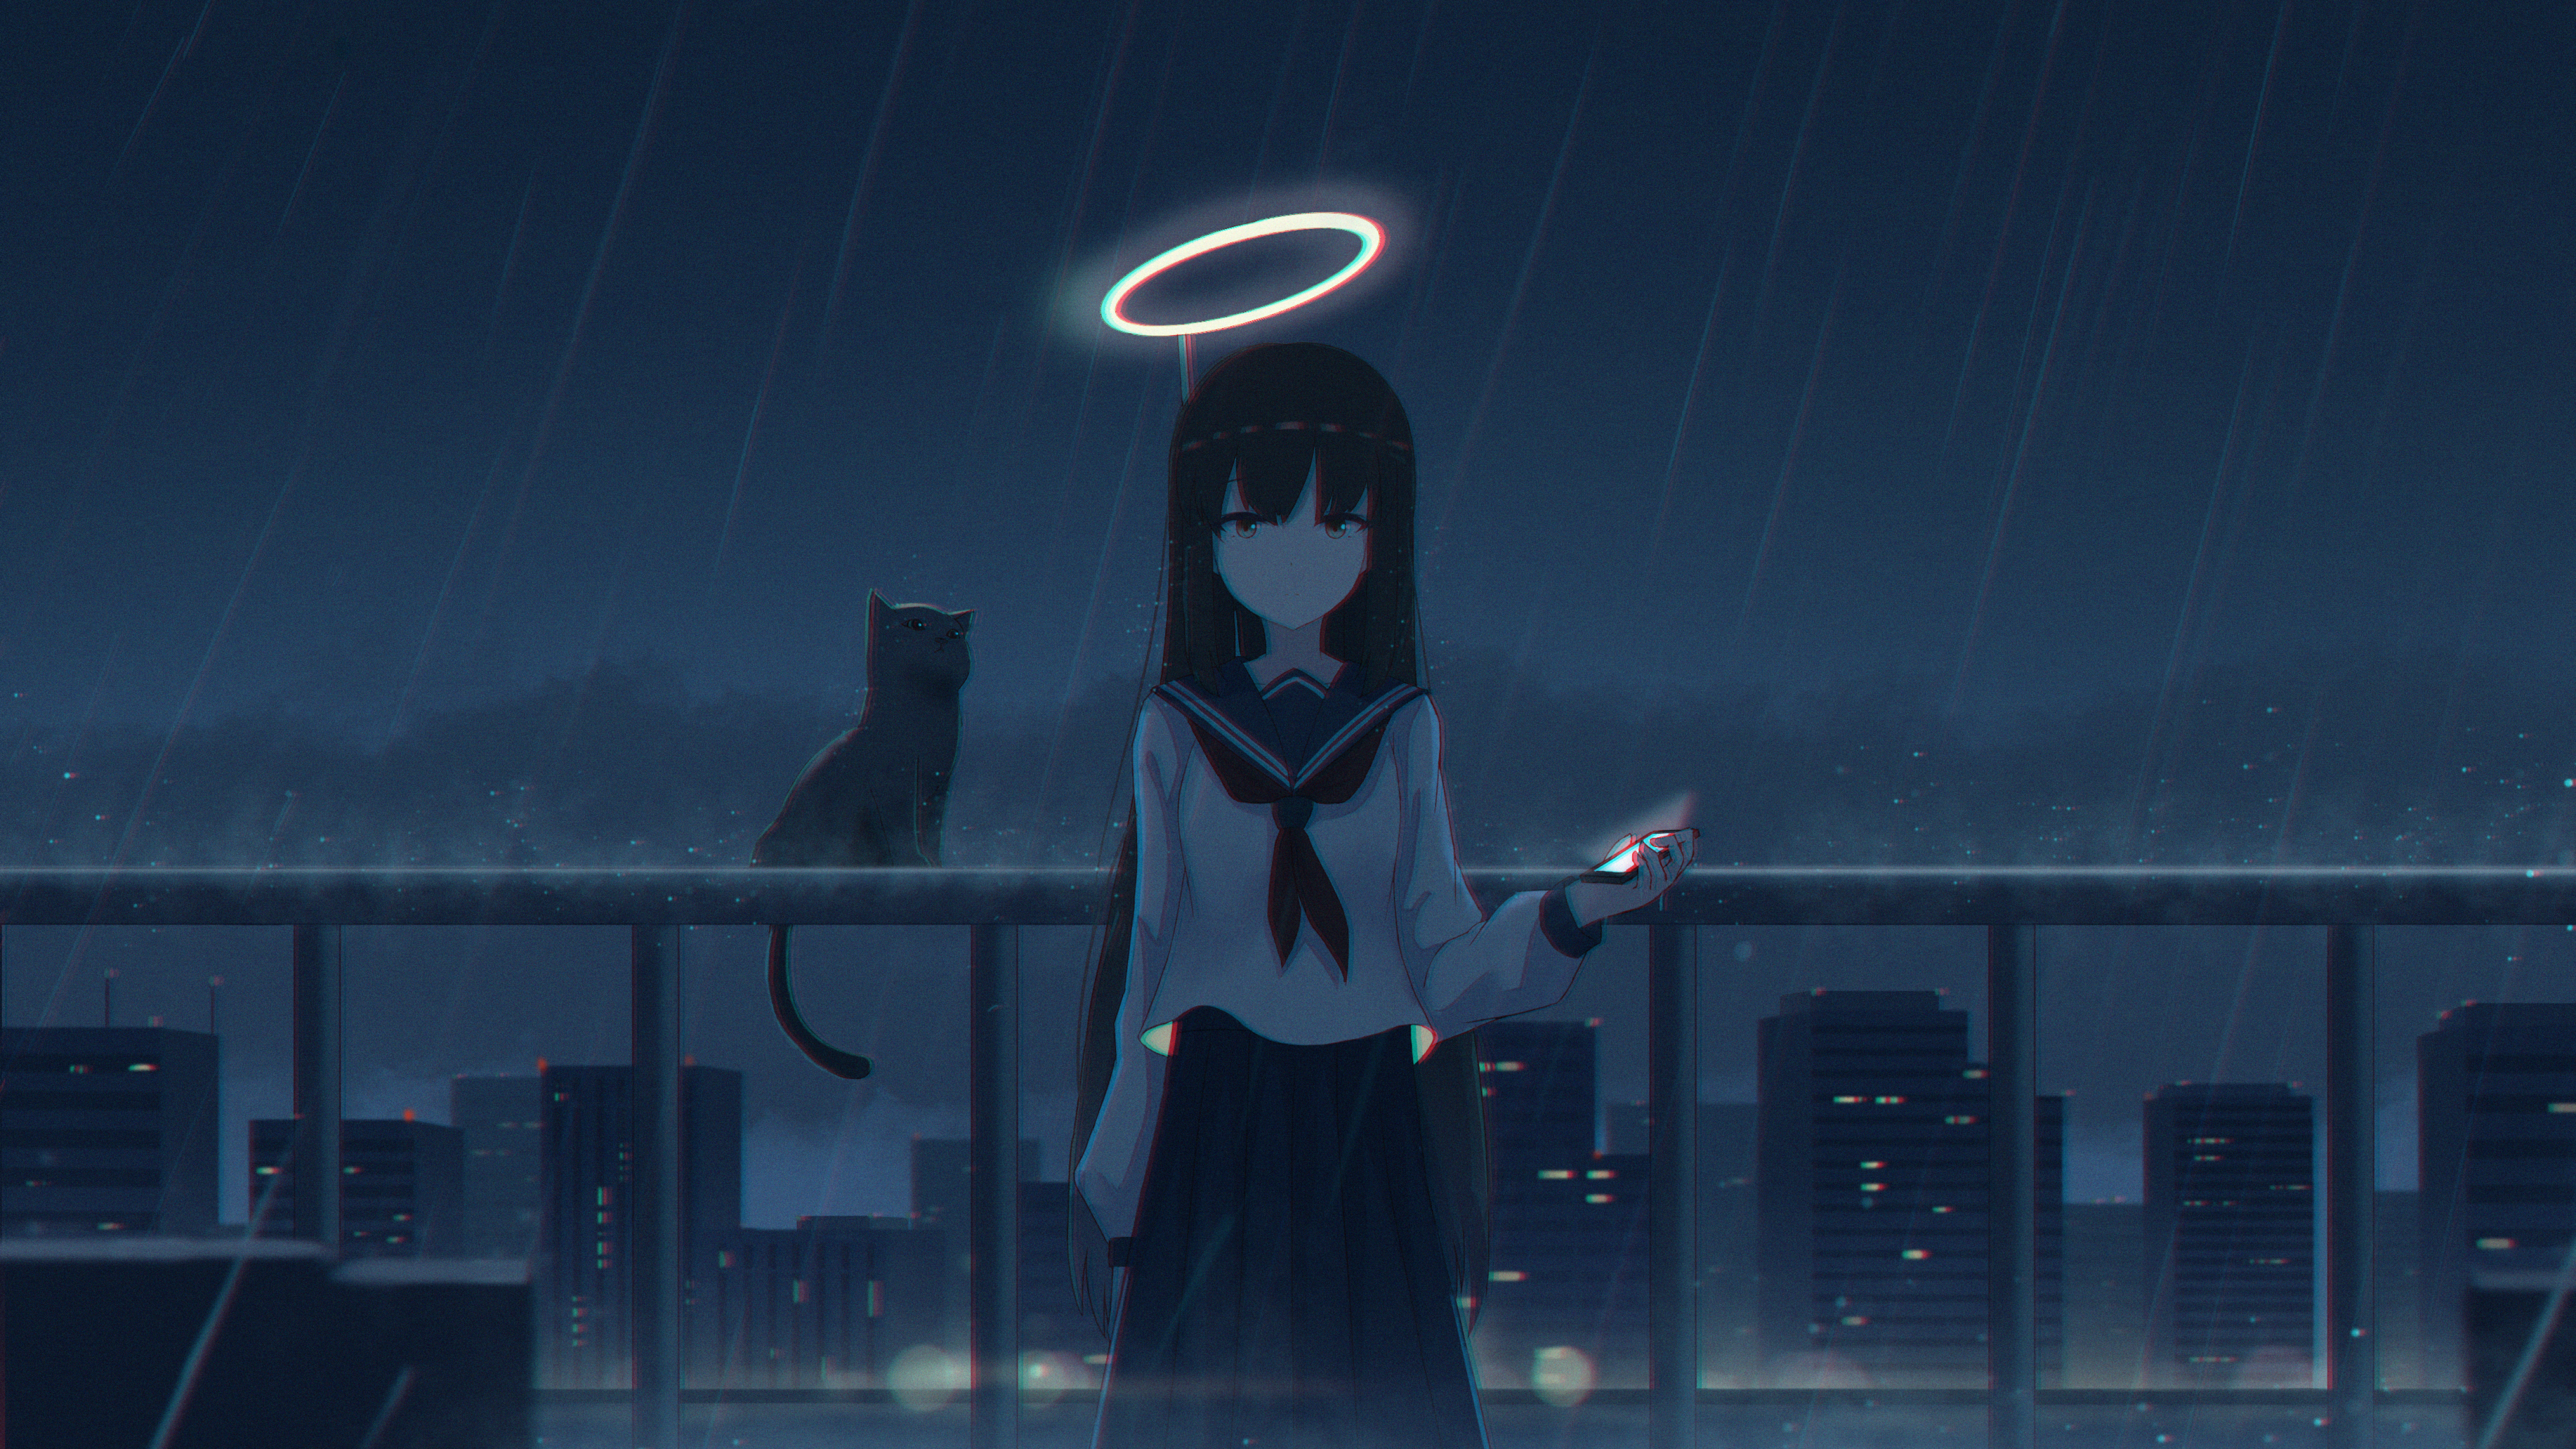 5120x2880 4k Girl In The Rain With Cat 5k Wallpaper Hd Anime 4k Wallpapers Images Photos And Background